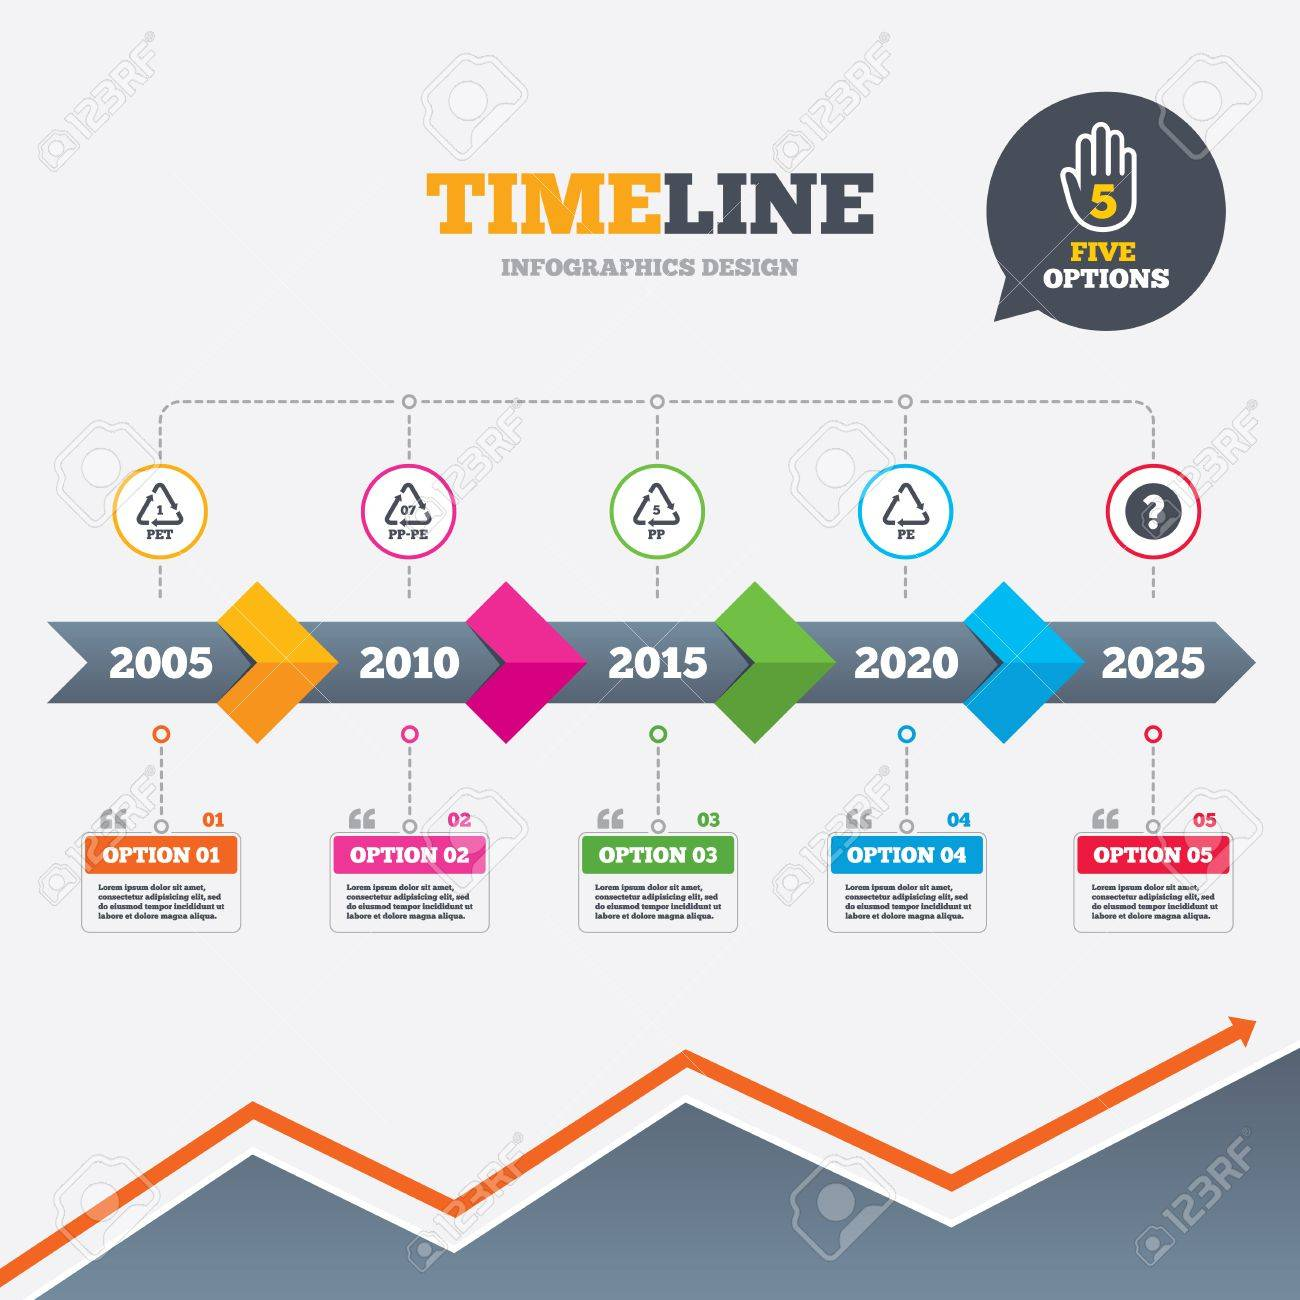 Timeline Infographic With Arrows. PET 1, PP-pe 07, PP 5 And PE ...